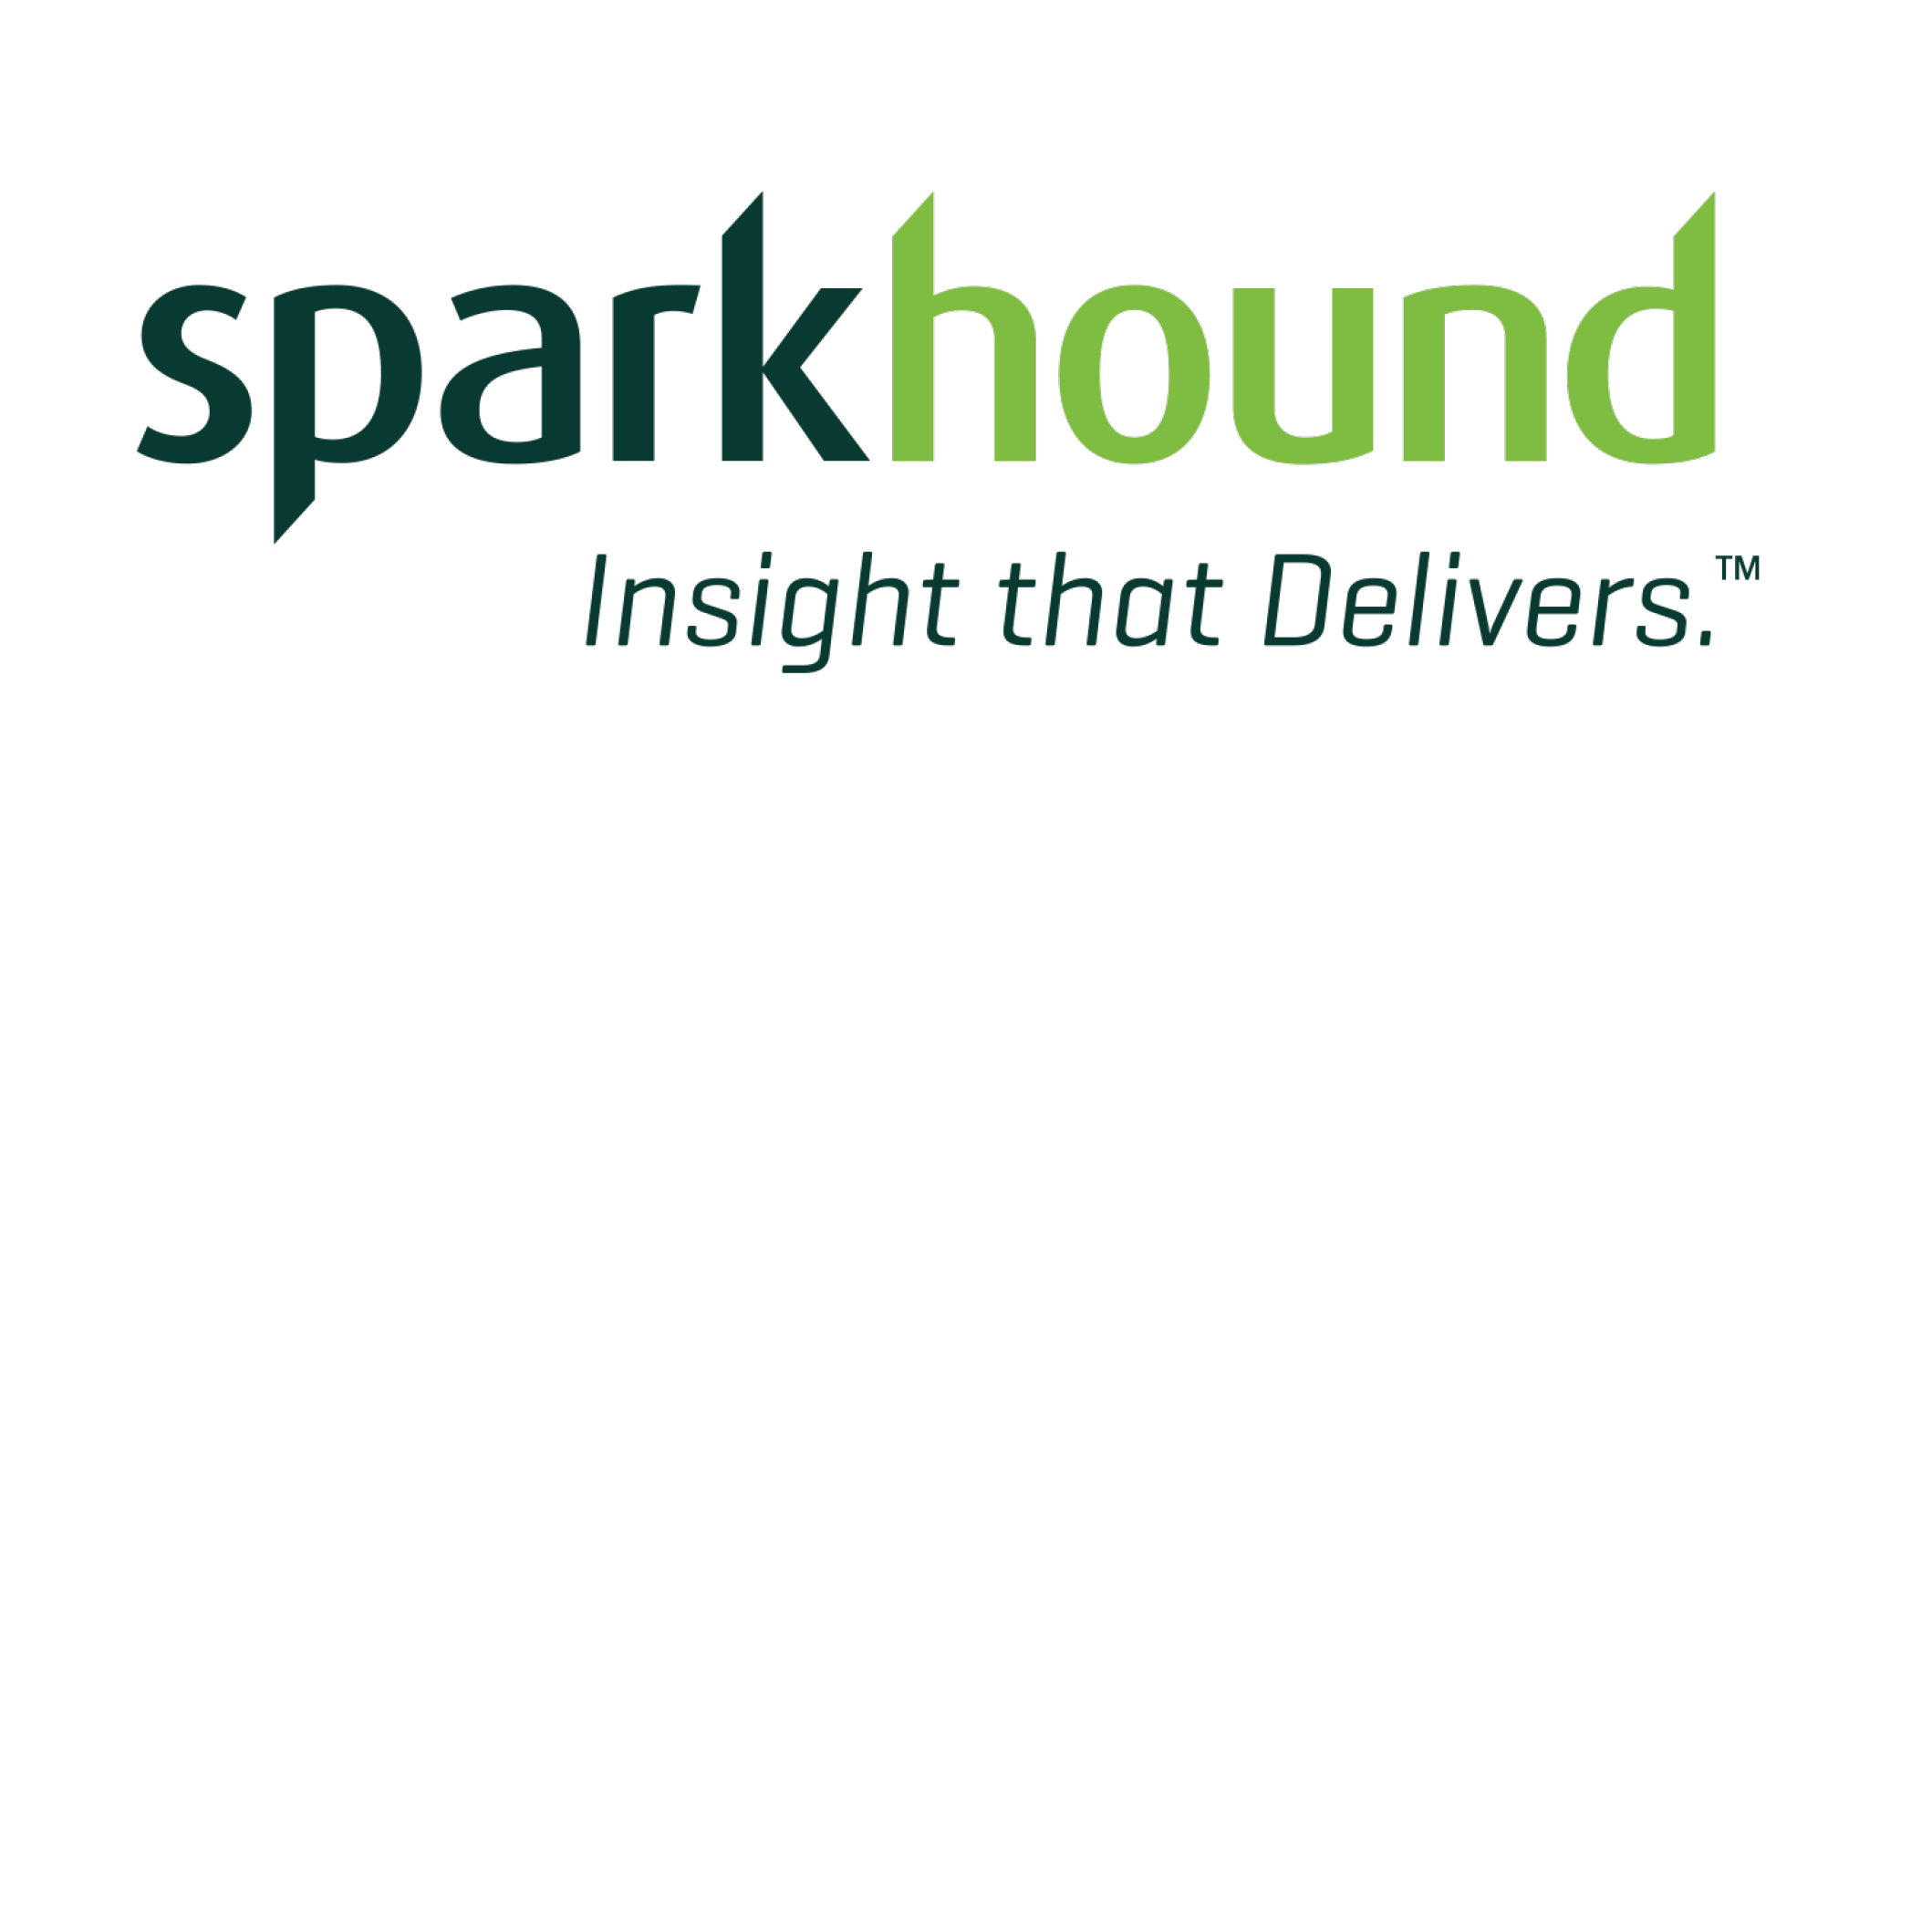 sparkhound.png